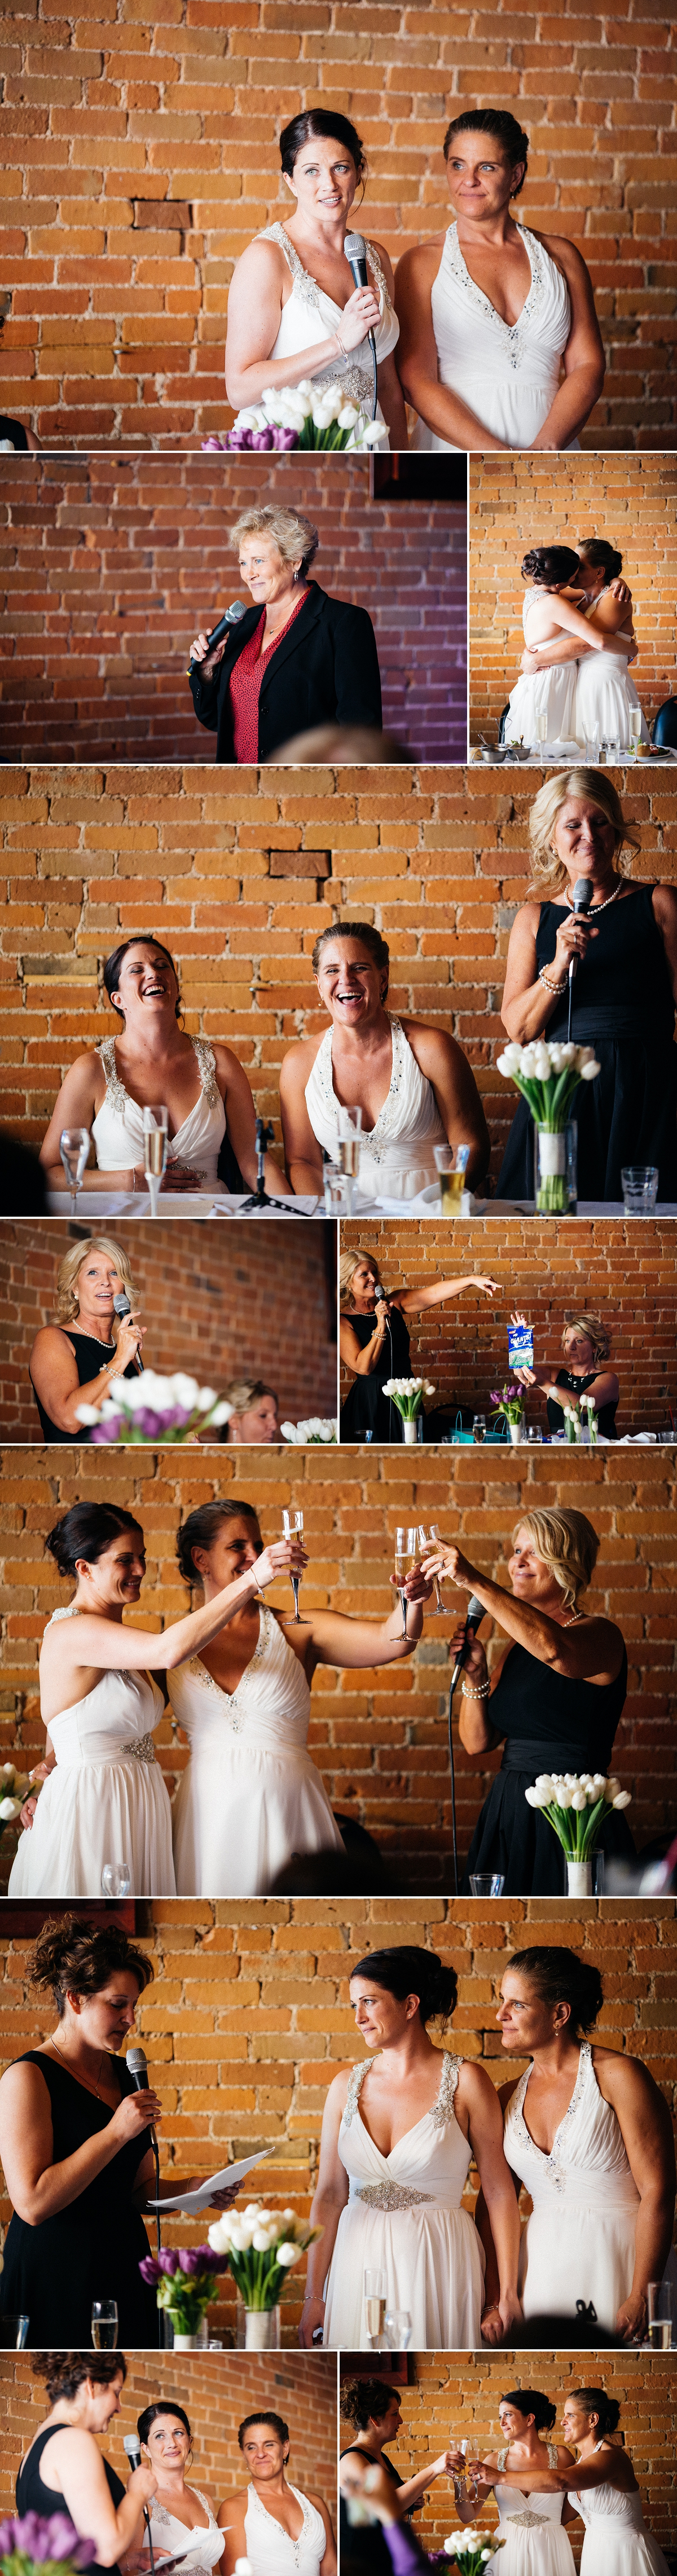 Beth and Gina Shakopee Wedding Photography 20